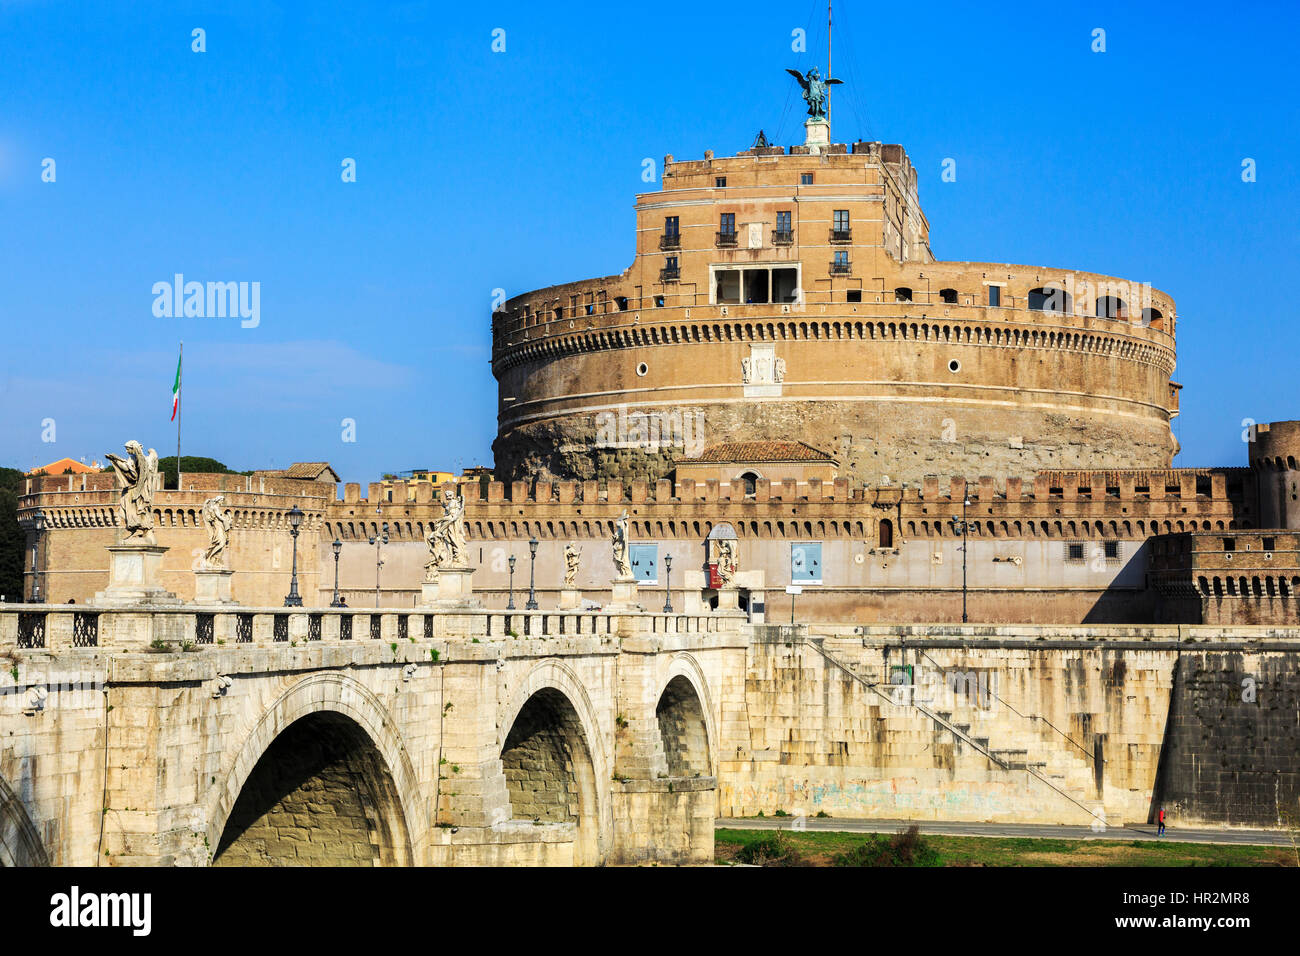 Castel Sant Angelo, with the bridge Pont Sant Angelo across the River Tiber in Parco Adriano district, Rome, Italy - Stock Image